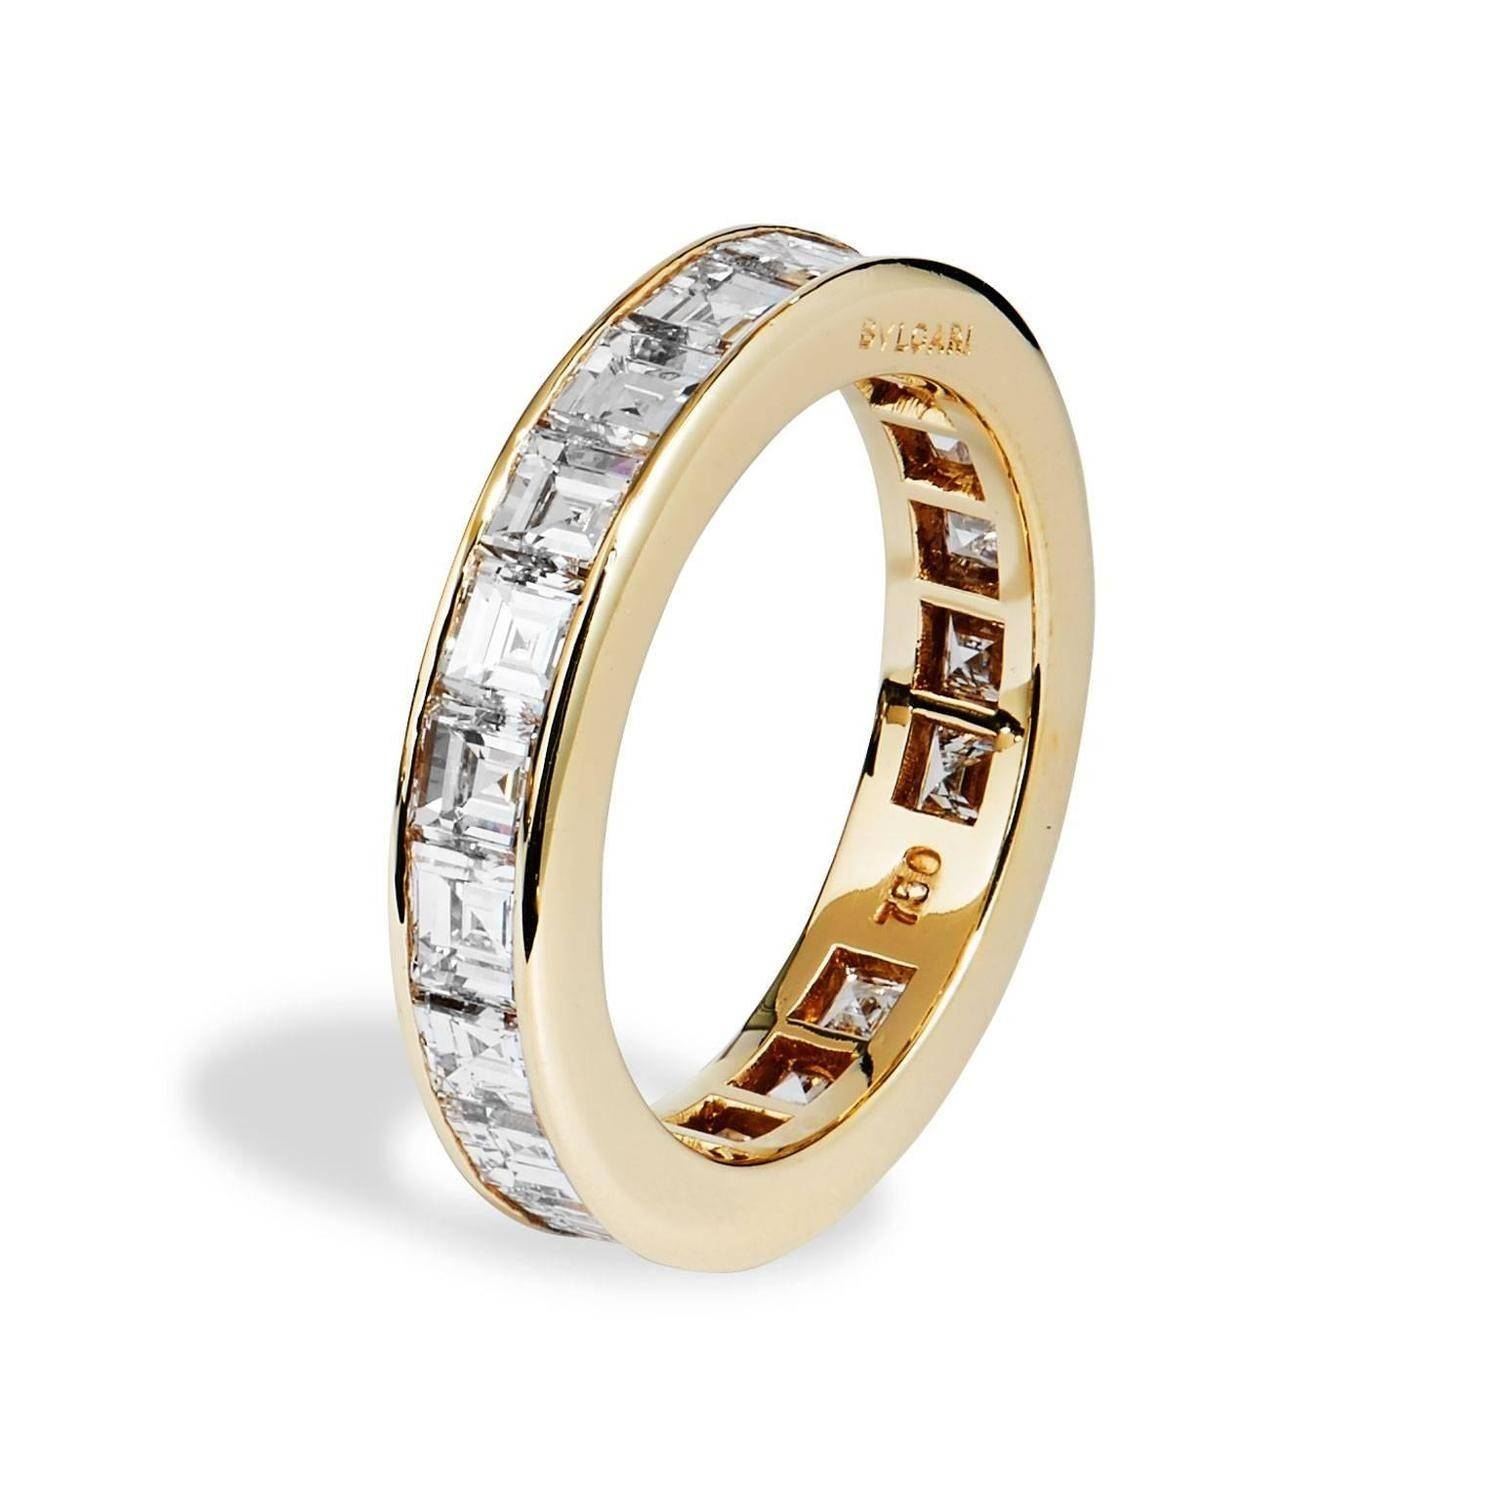 Wedding Rings With Diamonds All Around New Bulgari Carre Diamond In Wedding Bands With Diamonds All Around (View 5 of 15)